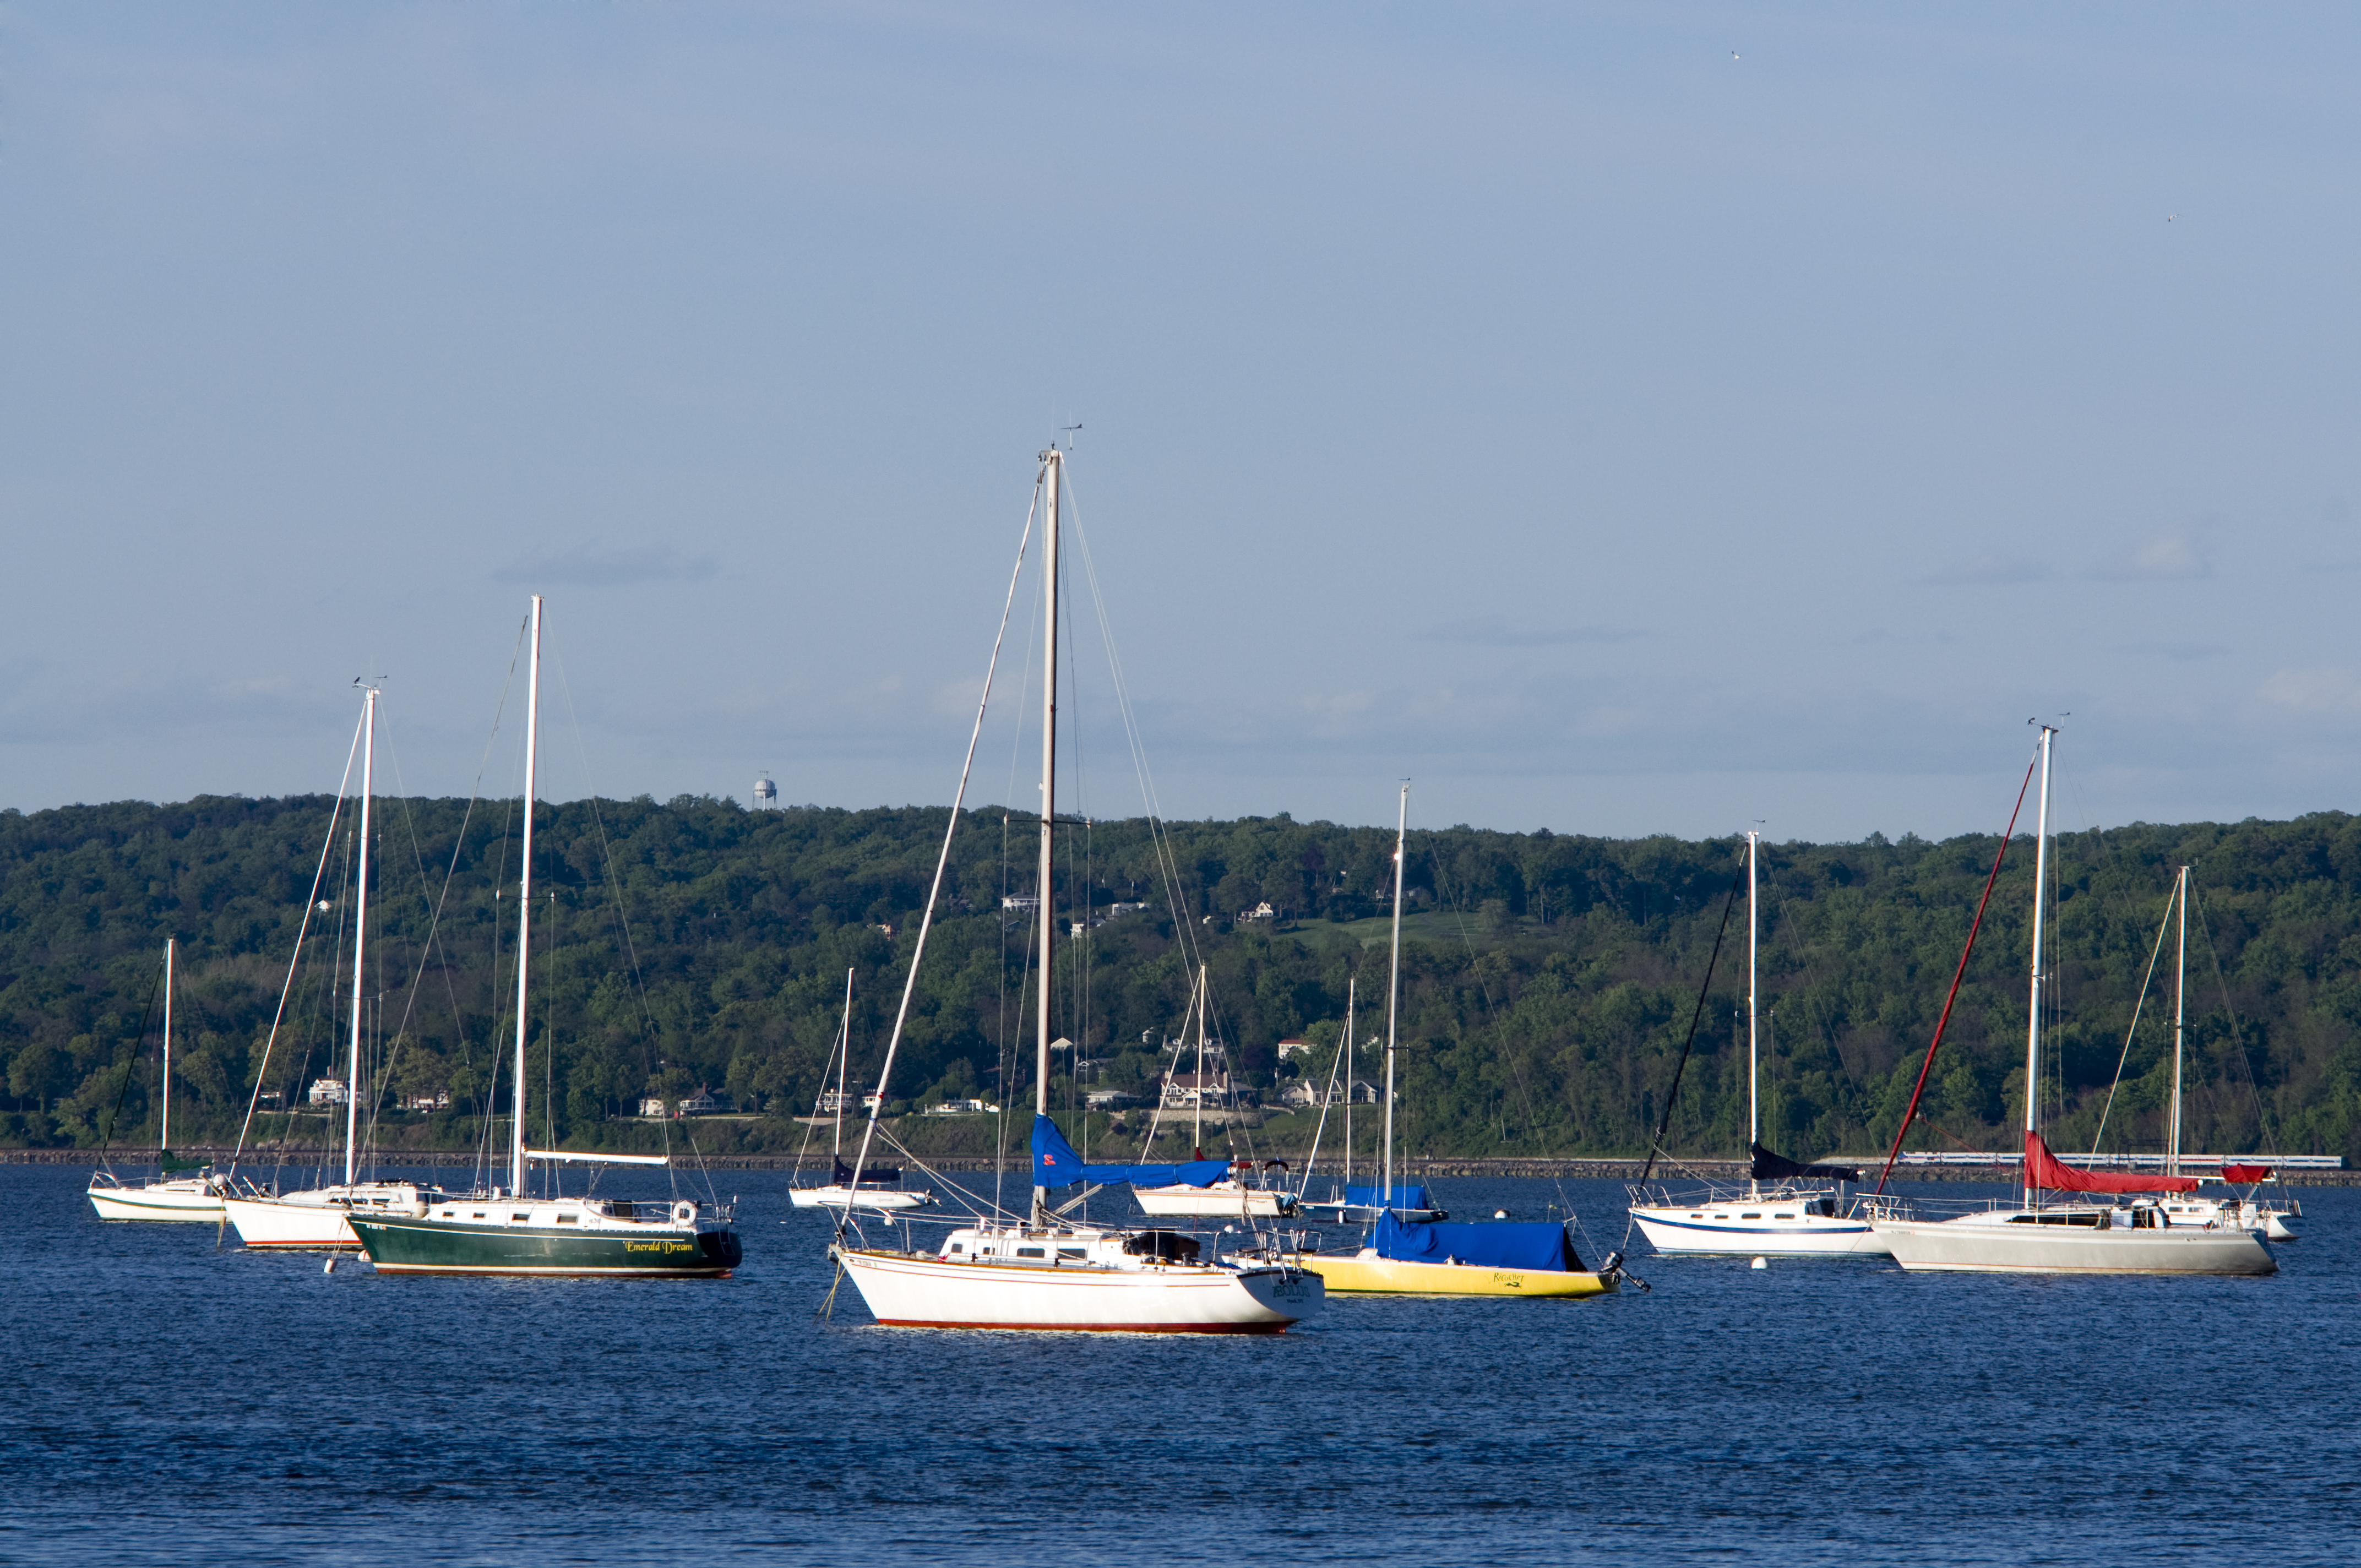 Boats on the Hudson, Blue, Boats, Foliage, Green, HQ Photo